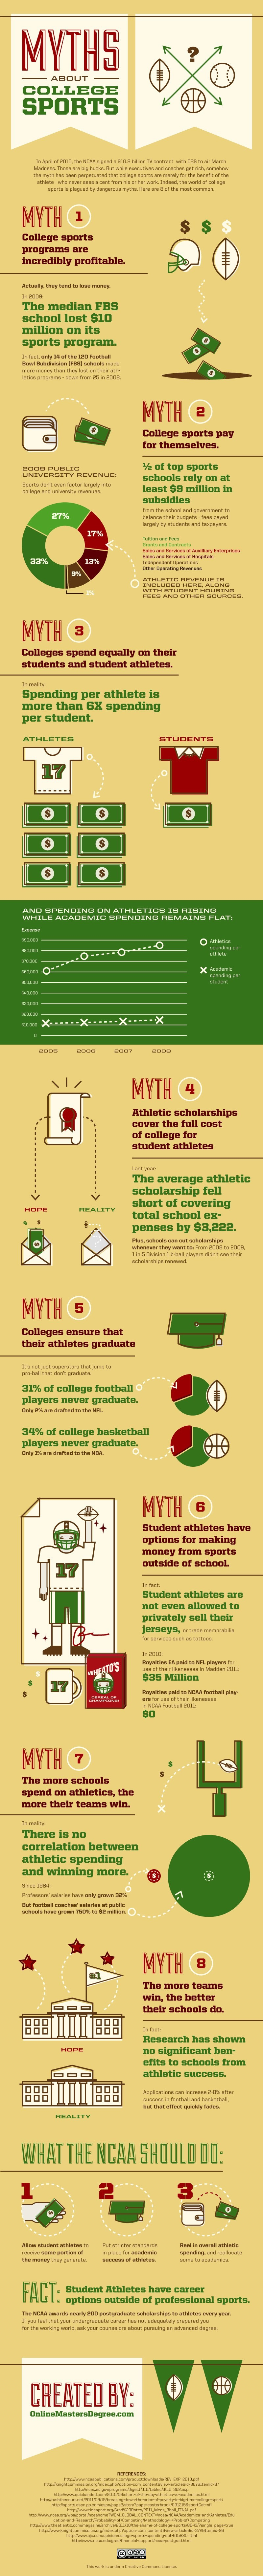 College Sports Myths